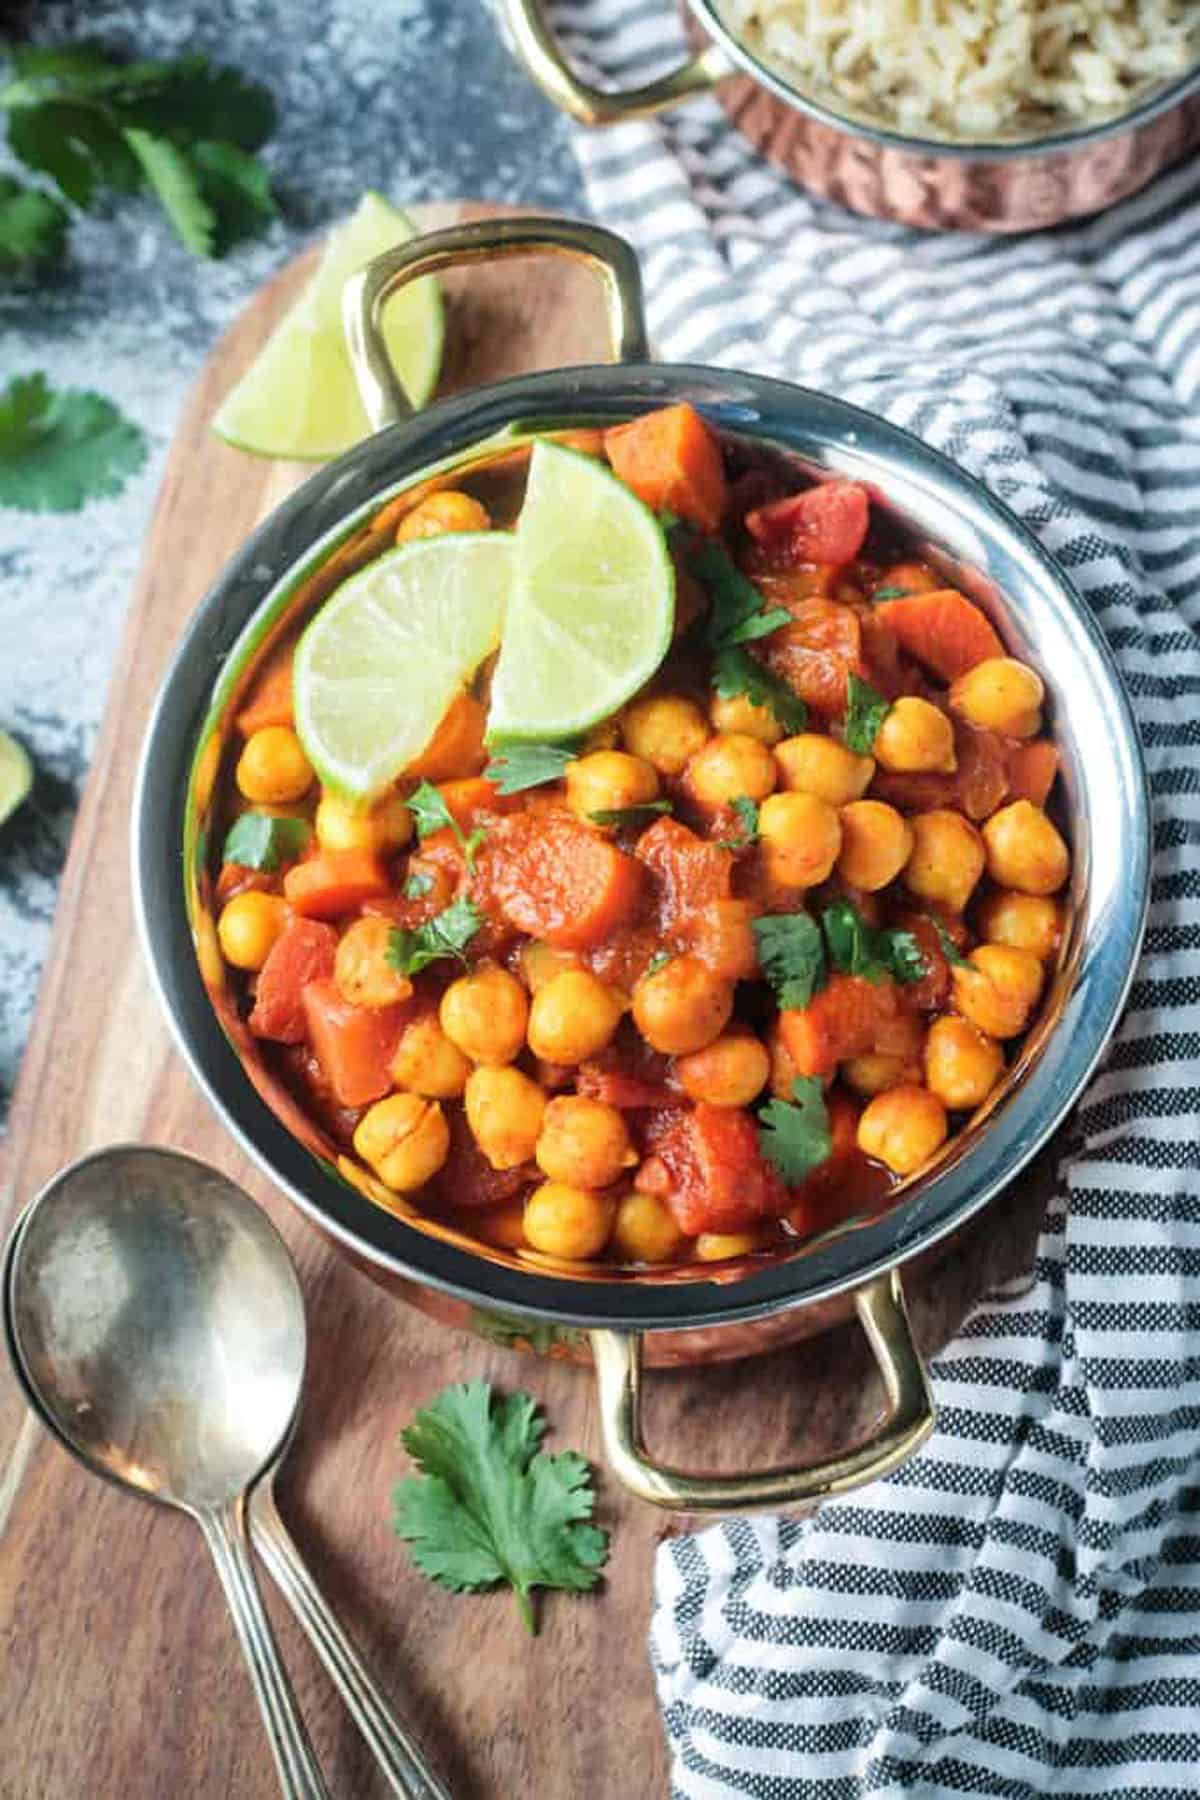 Up close overhead view of a pot of spiced chickpeas, carrots and tomatoes.